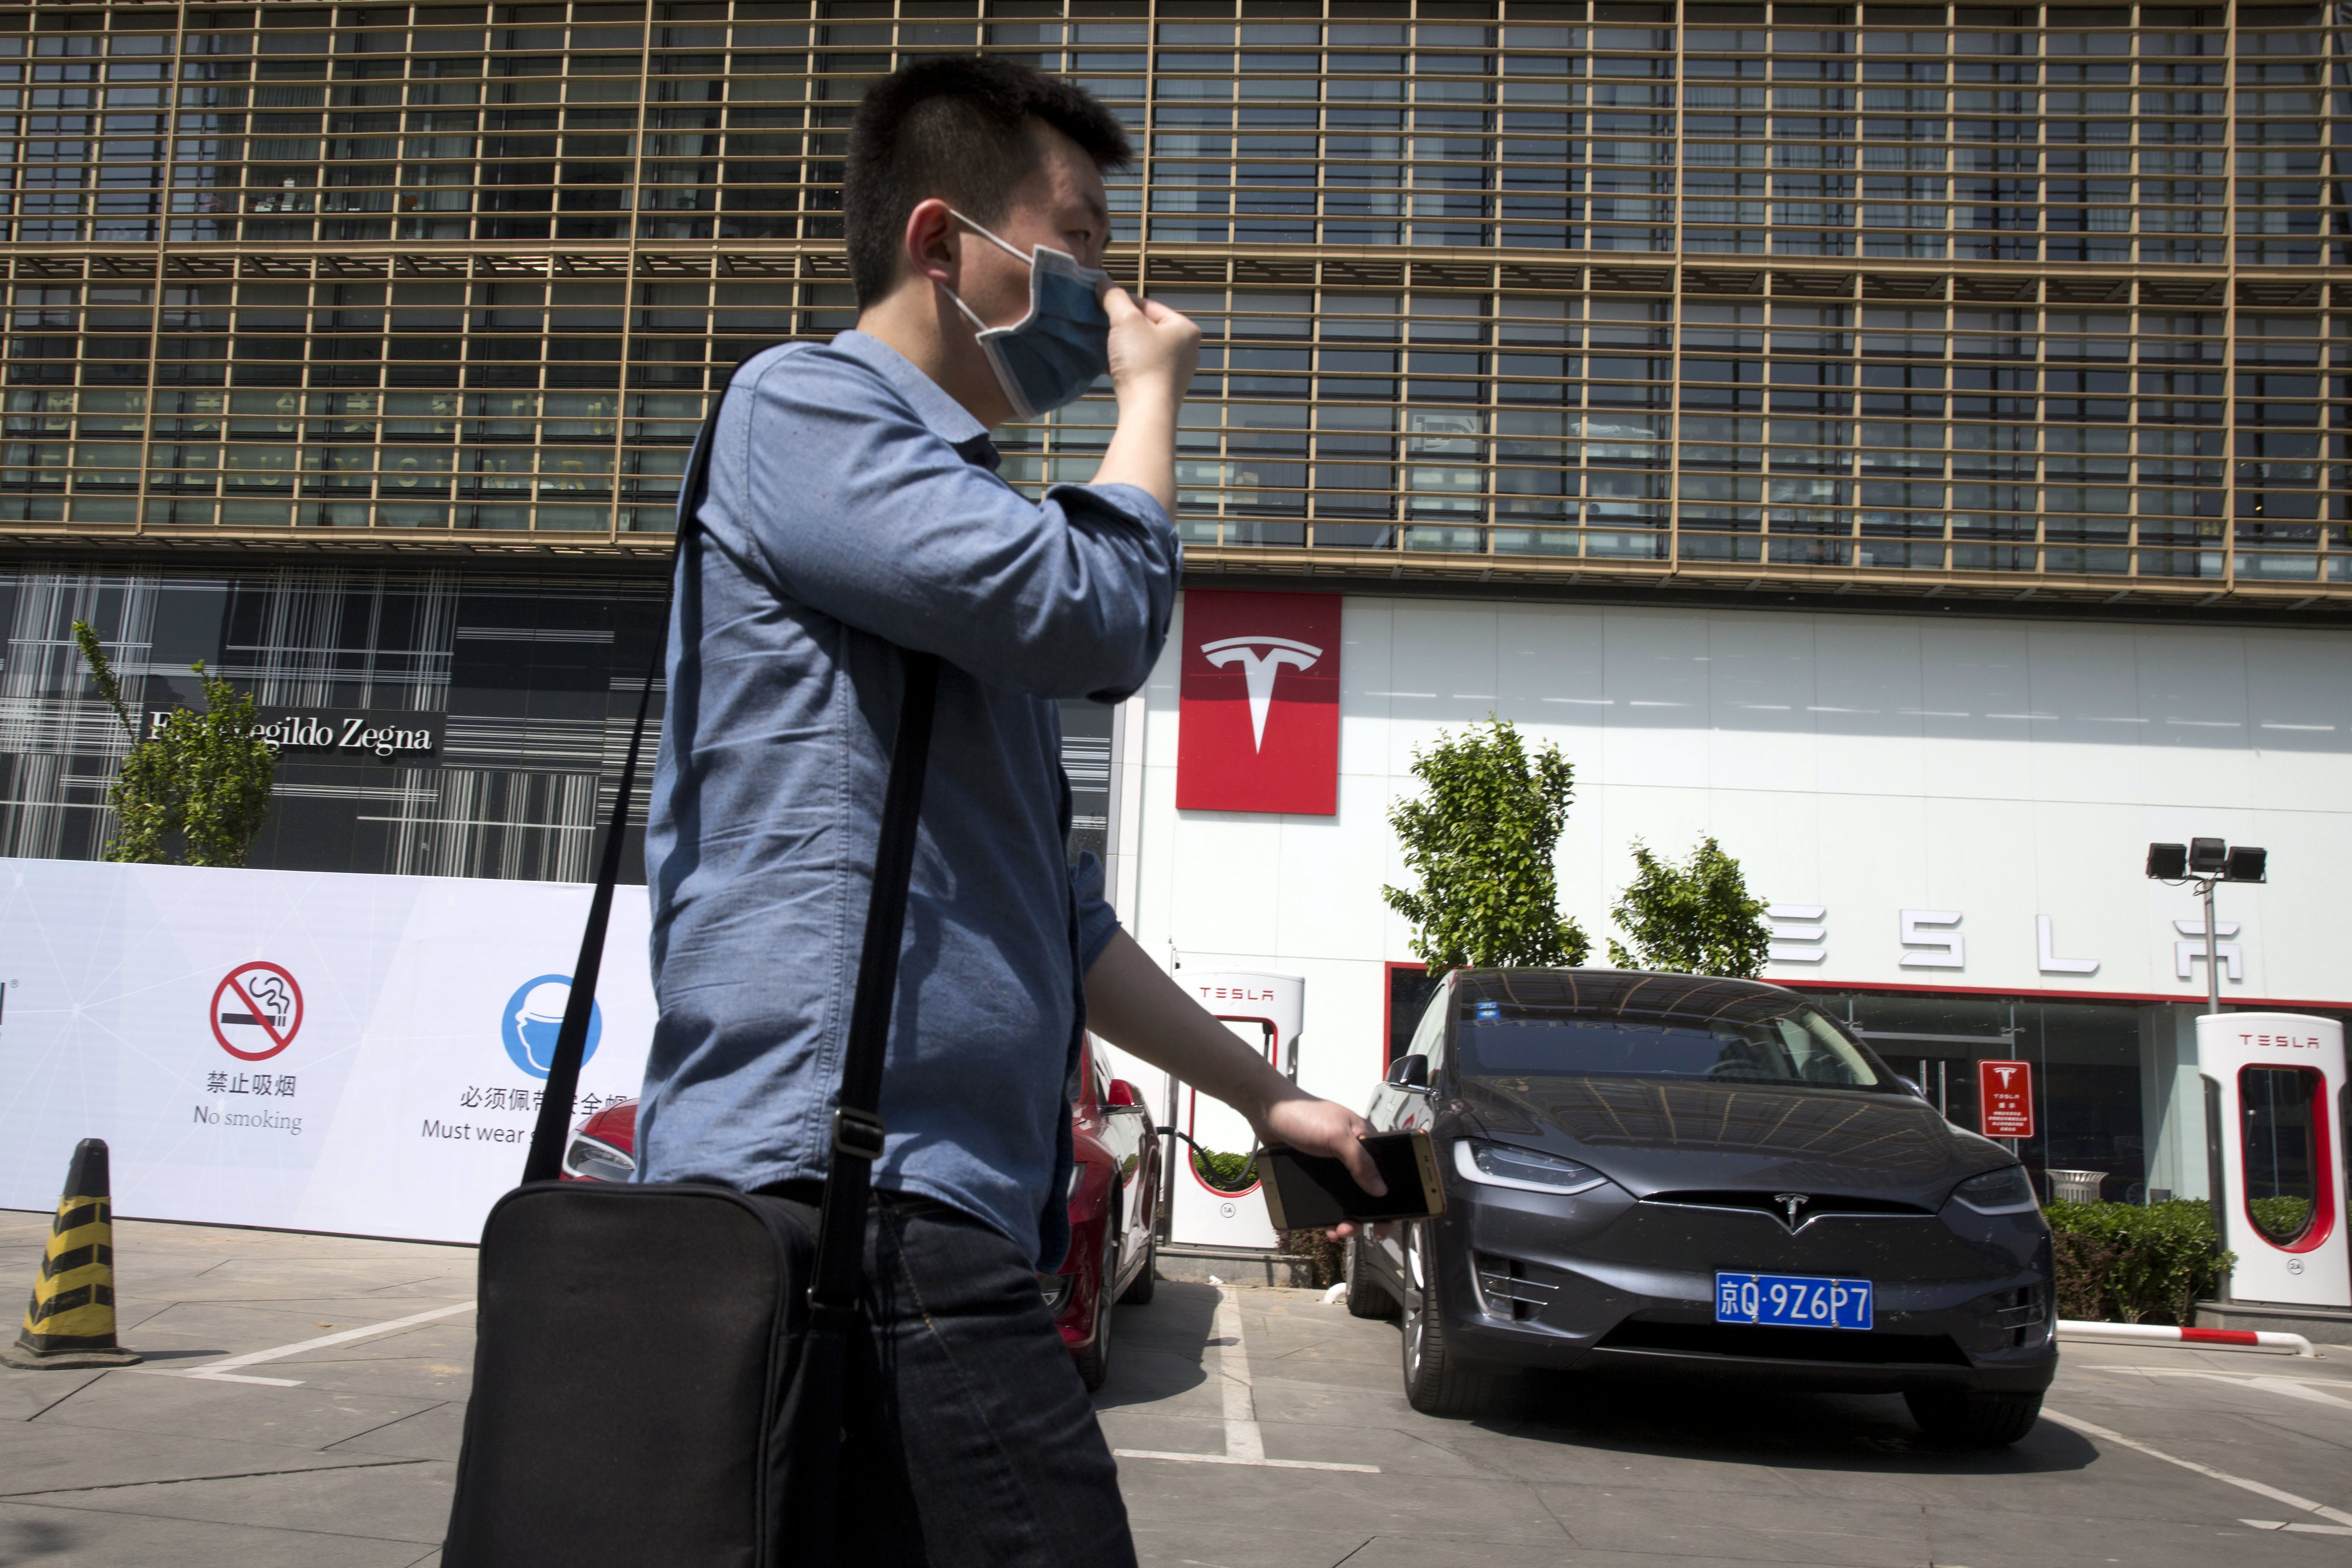 China Electric Car Dreams In this Friday, April 14, 2017 photo, a man wears a mask walks past a Tesla electric vehicle showroom and charging station in Beijing, China. Automakers face a conflict in China's huge but crowded market: Regulators are pushing them to sell electric cars, but buyers want gasoline-hungry SUVs. (AP Photo/Ng Han Guan)